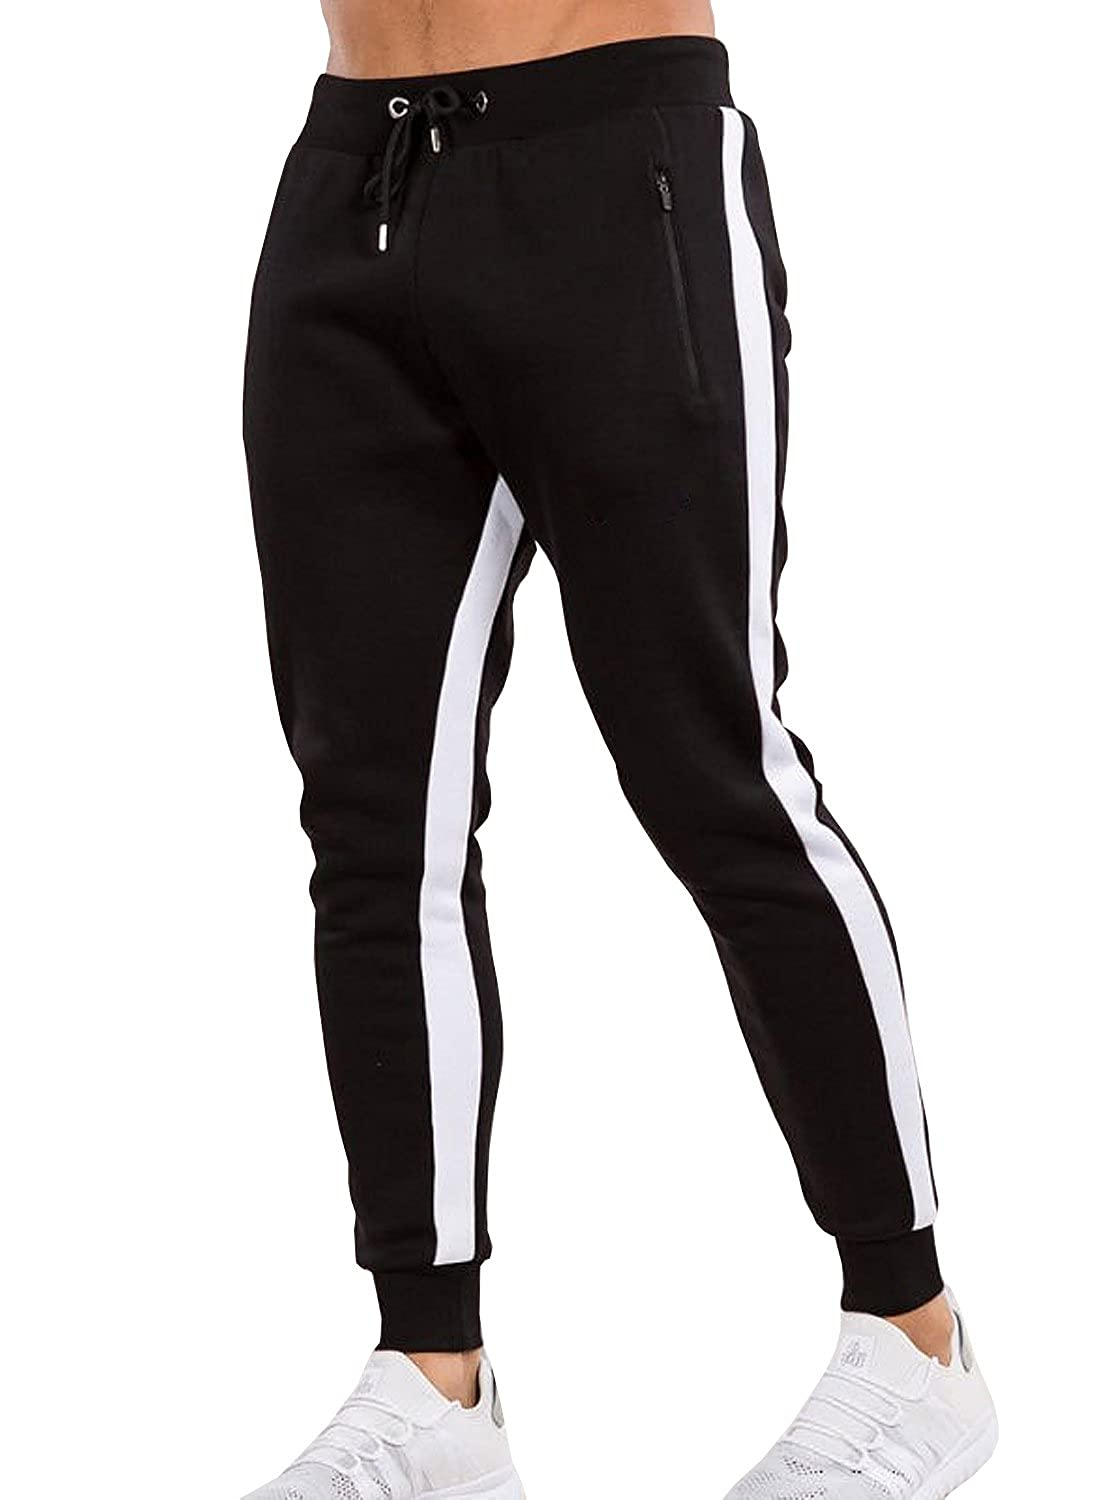 be2c79e6c Amazon.com: Ouber Men's Gym Jogger Pants Slim Fit Workout Running Sweatpants  with Zipper Pockets: Clothing